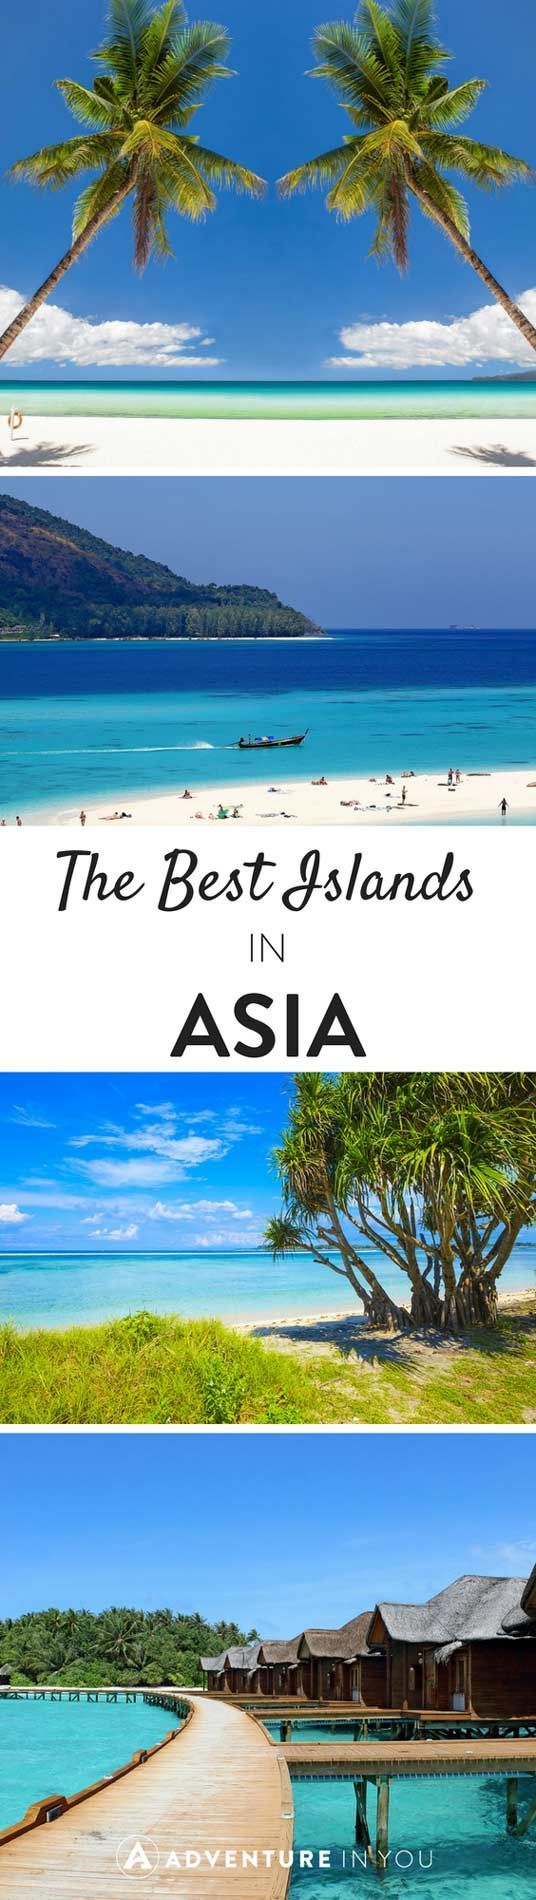 Beaches in Asia | Our top picks for some of the best islands and beaches in Southeast Asia. From stunning white sand and clear waters, these photos are enough to make you pack your bags and go.